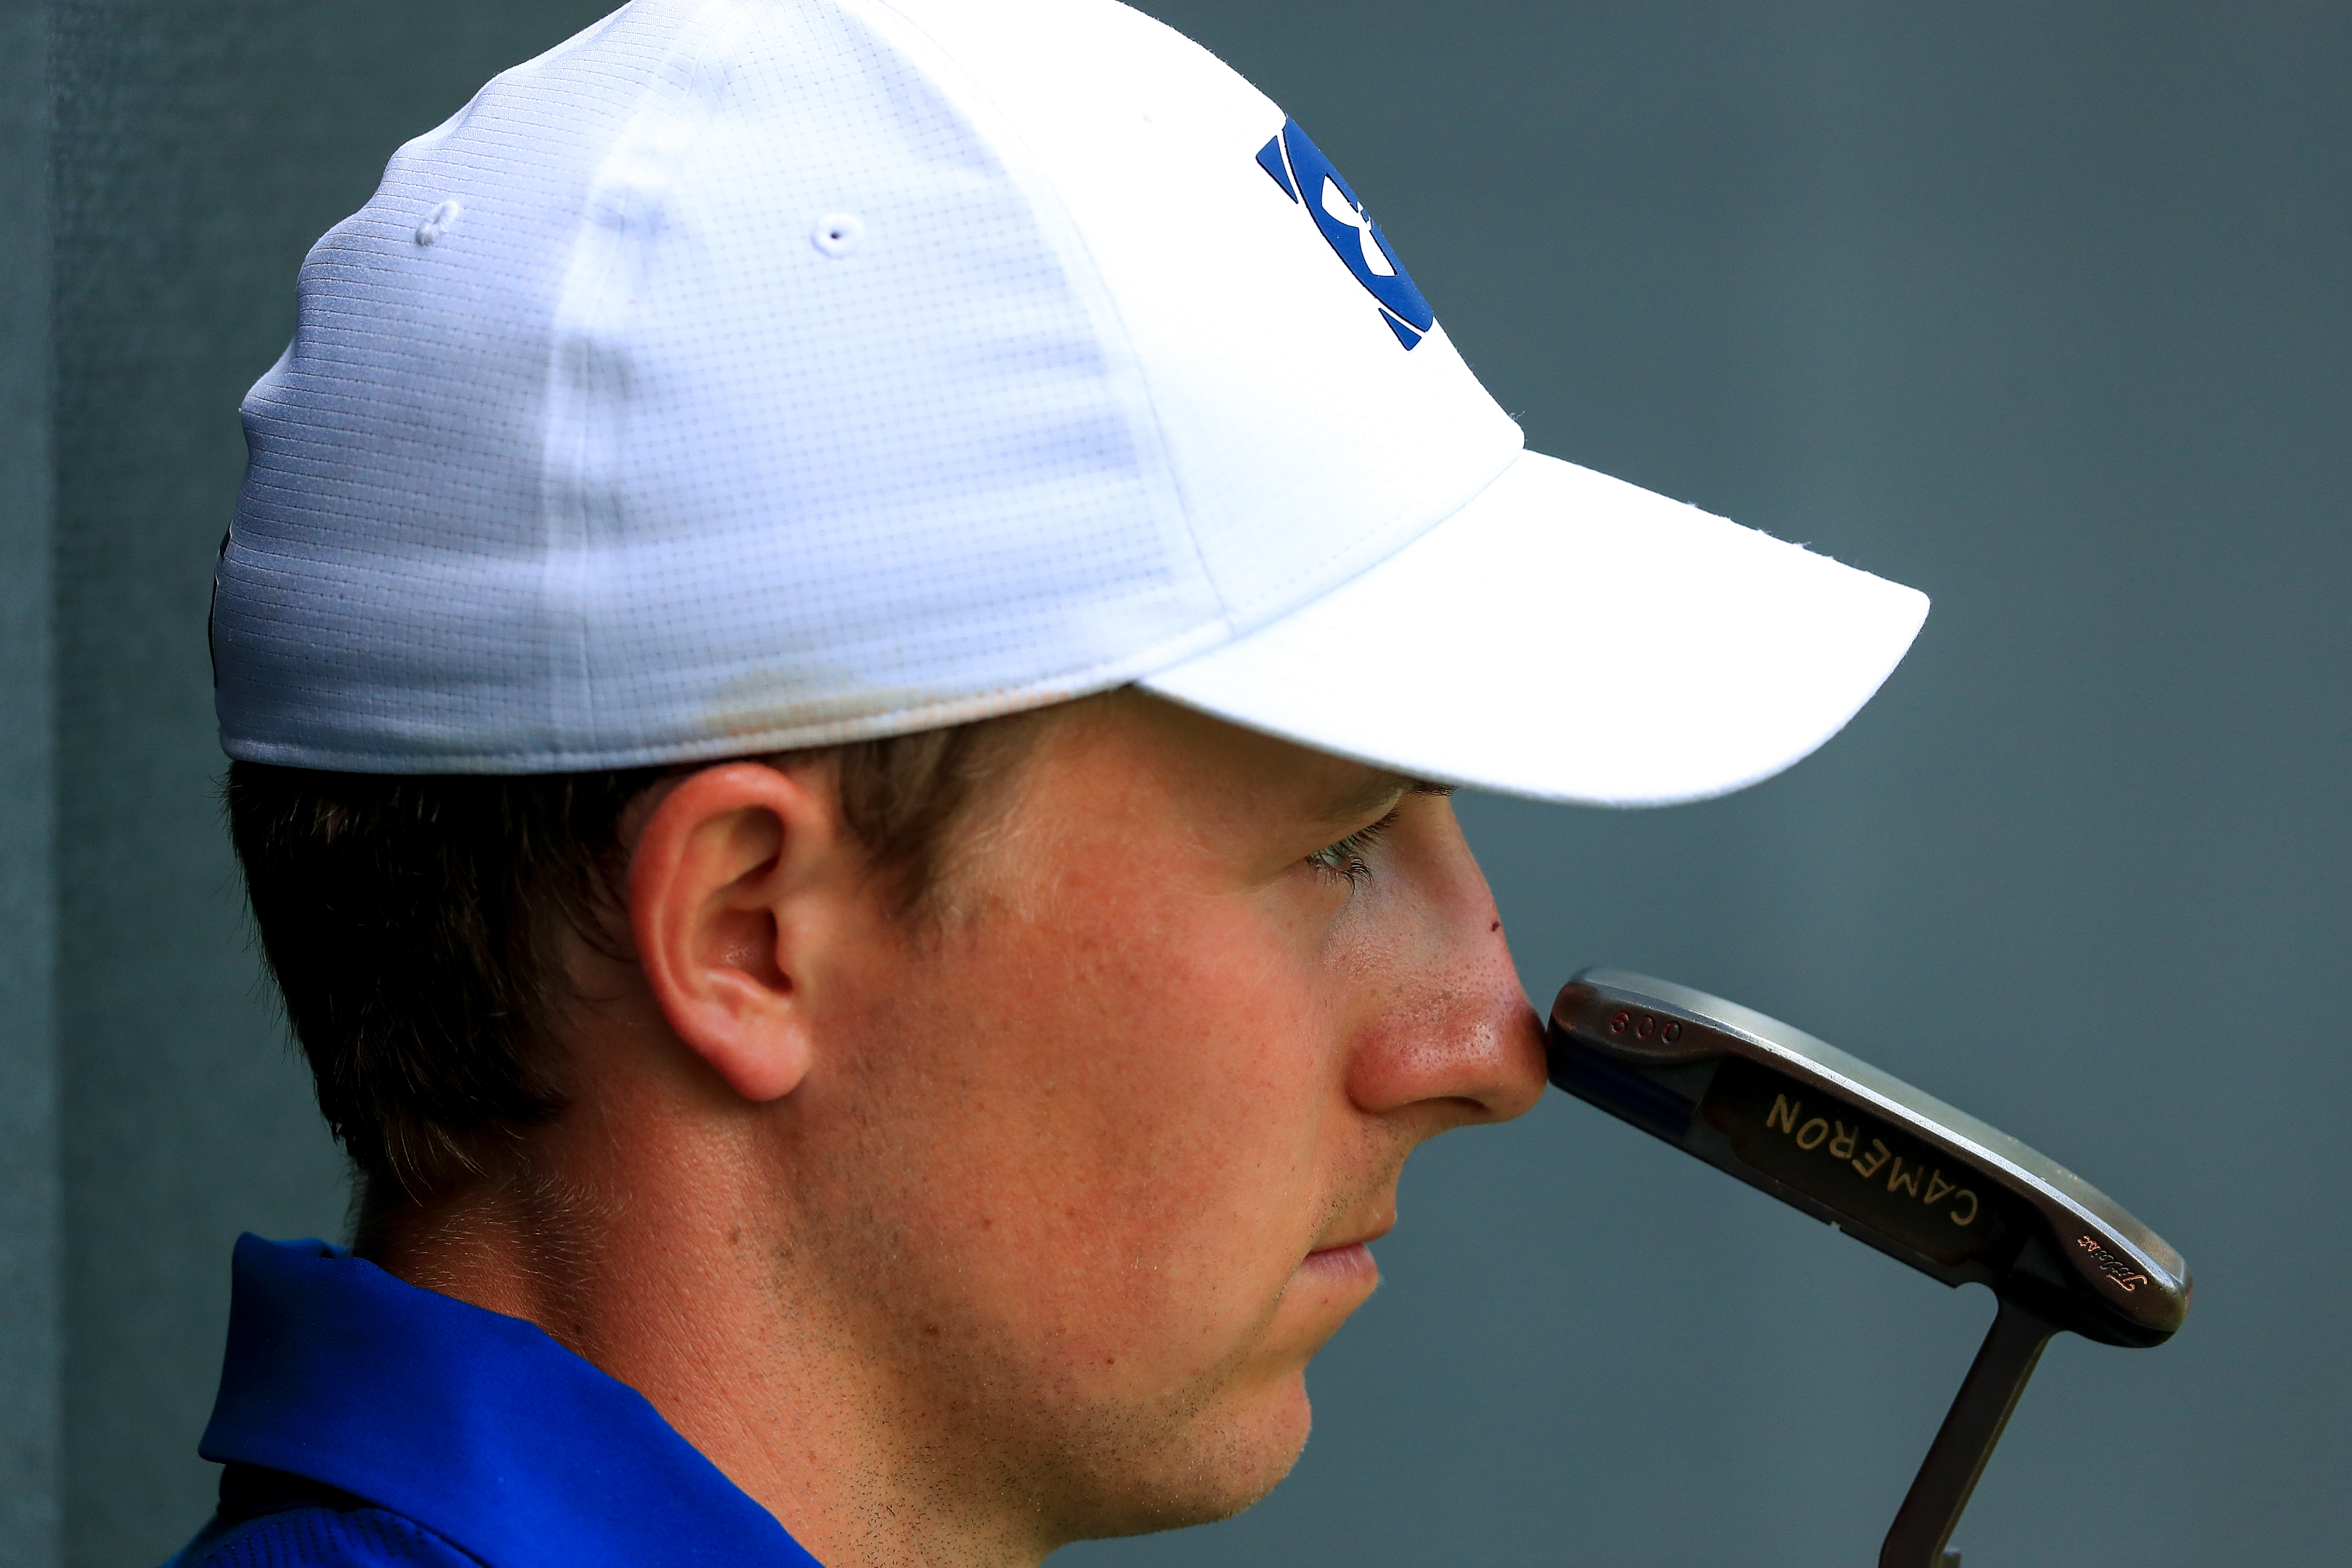 d07c8965a03dff Jordan Spieth has typically been regarded as one of the game s best putters  on the PGA Tour. So much so